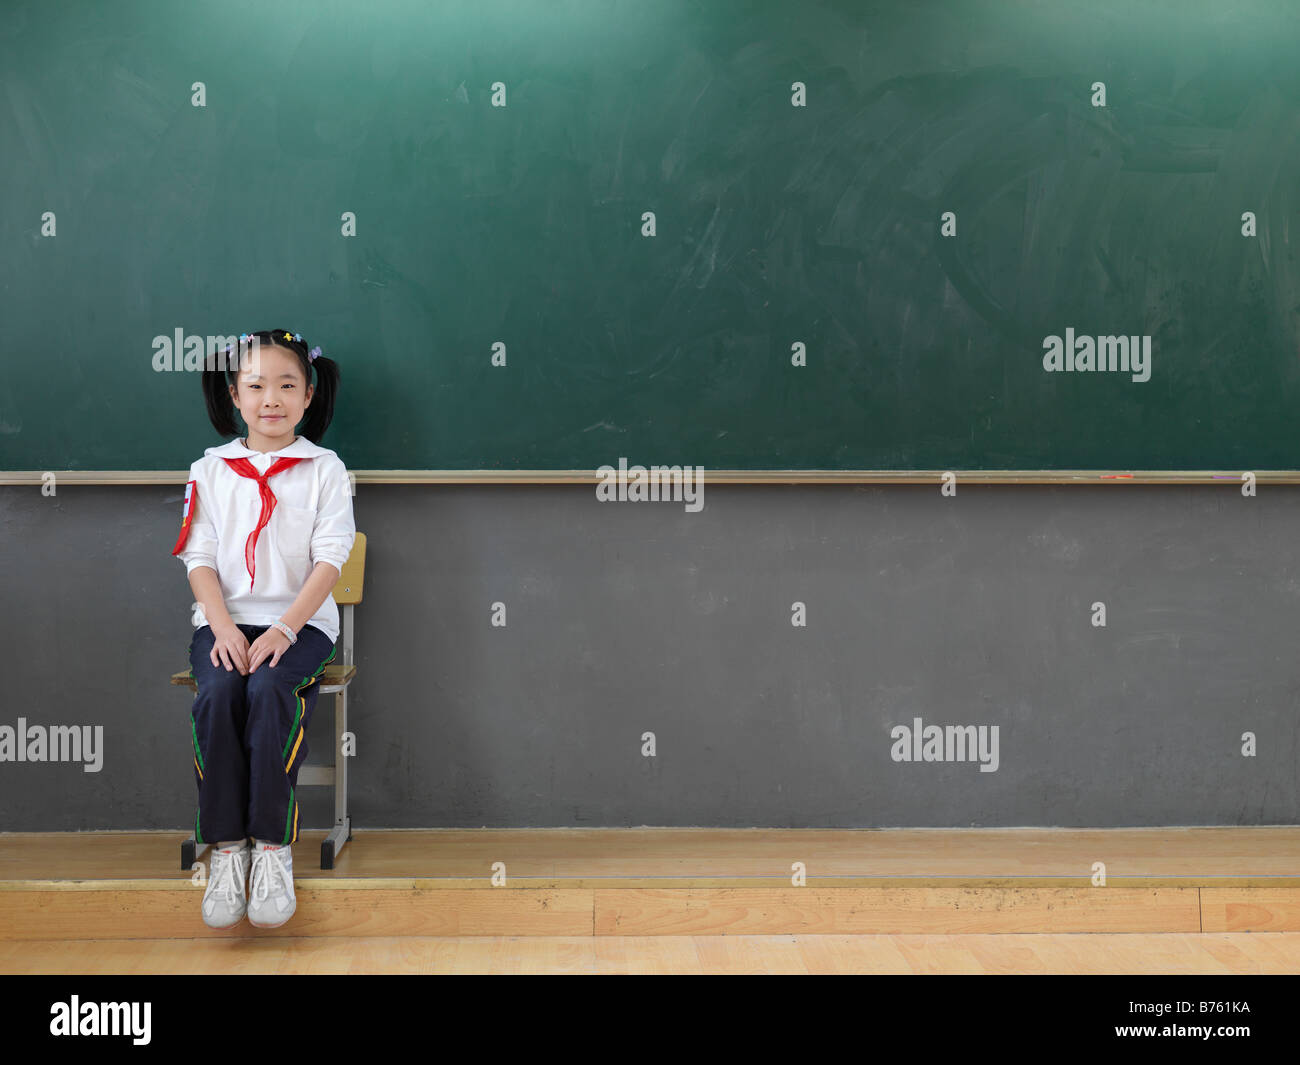 A portrait of a Chinese school girl sitting in front of a chalkboard. - Stock Image